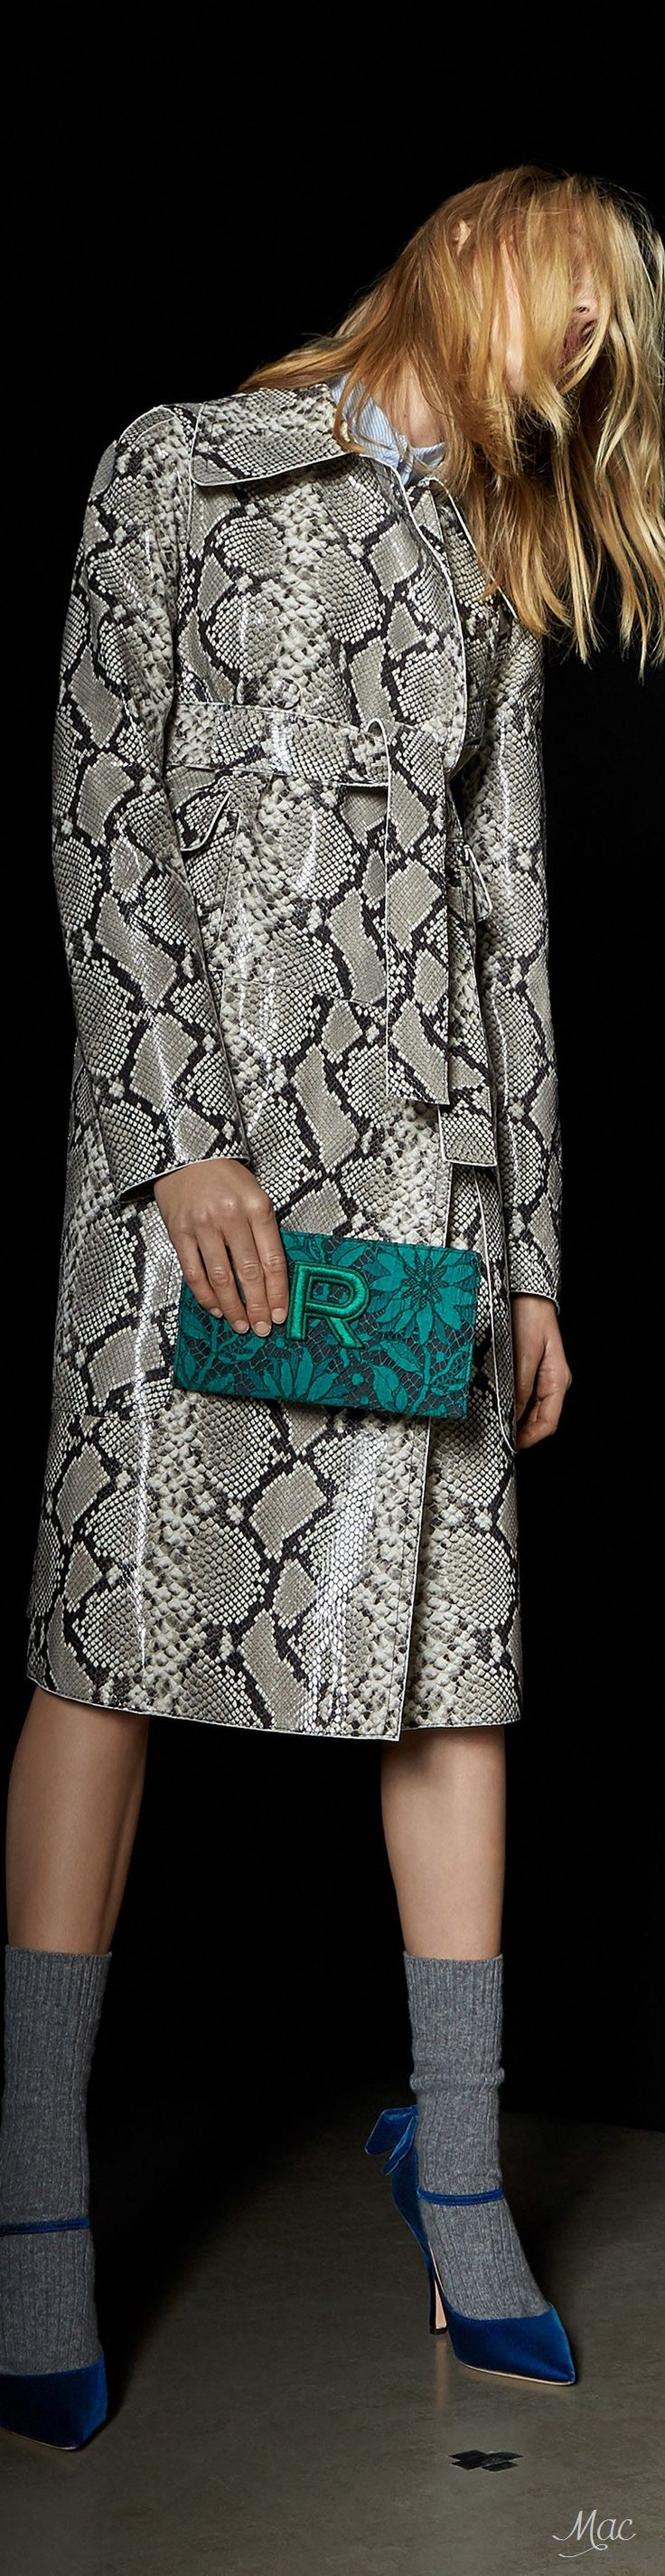 Avalisa letter upper case t stretched wall art - Pre Fall 2017 Rochas